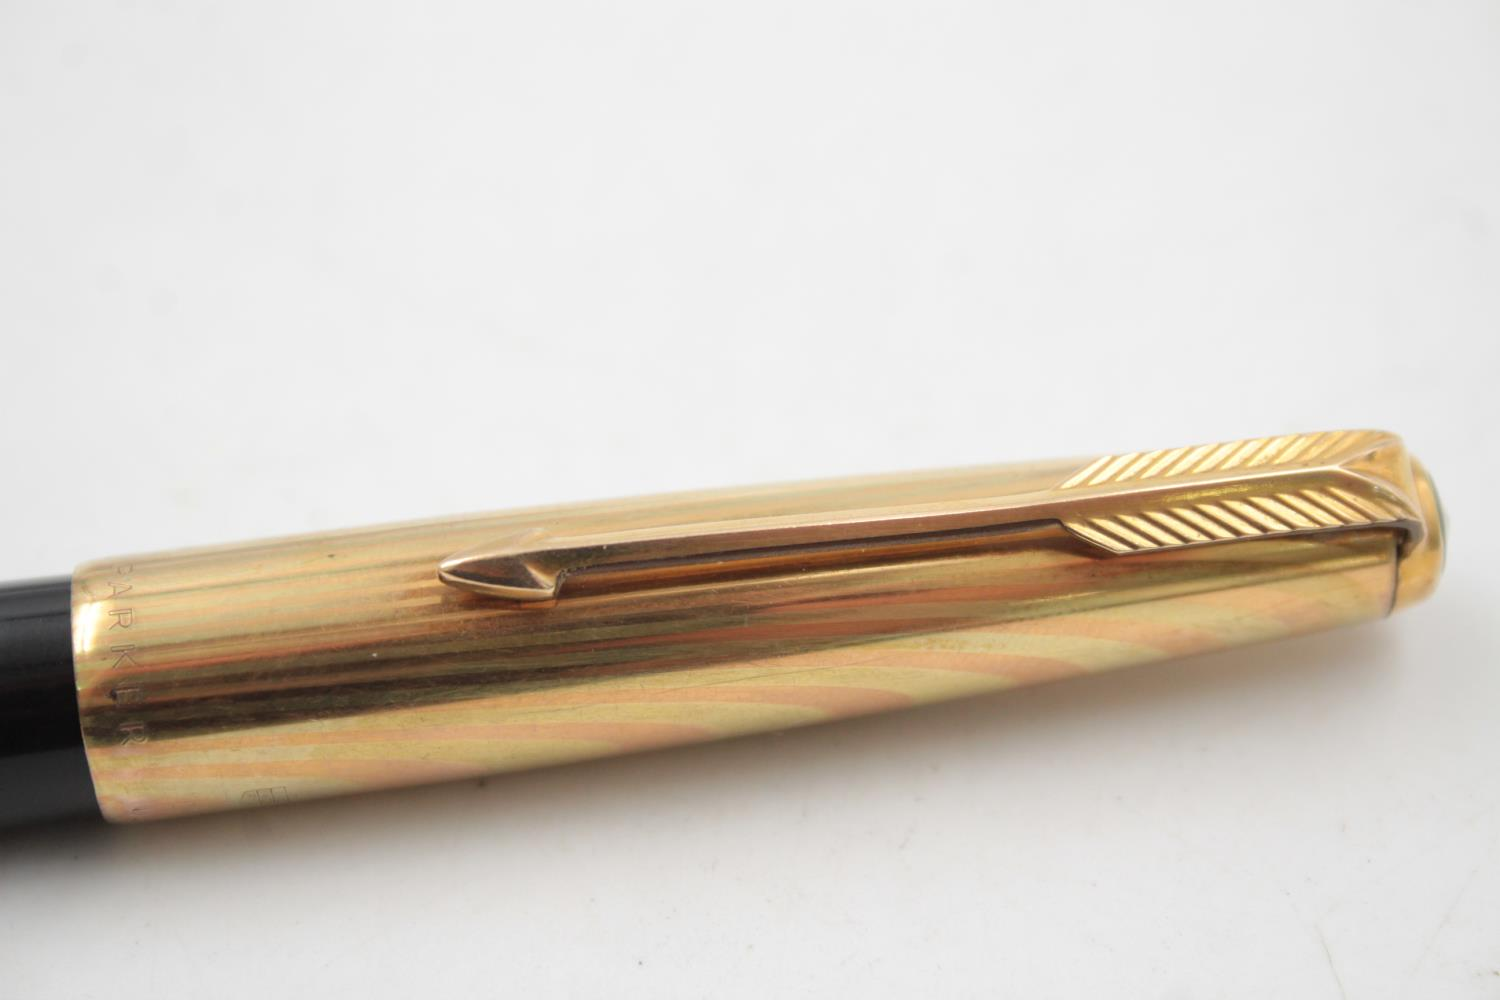 Vintage PARKER 61 Black FOUNTAIN PEN w/ Rolled Gold Cap WRITING - Image 5 of 7